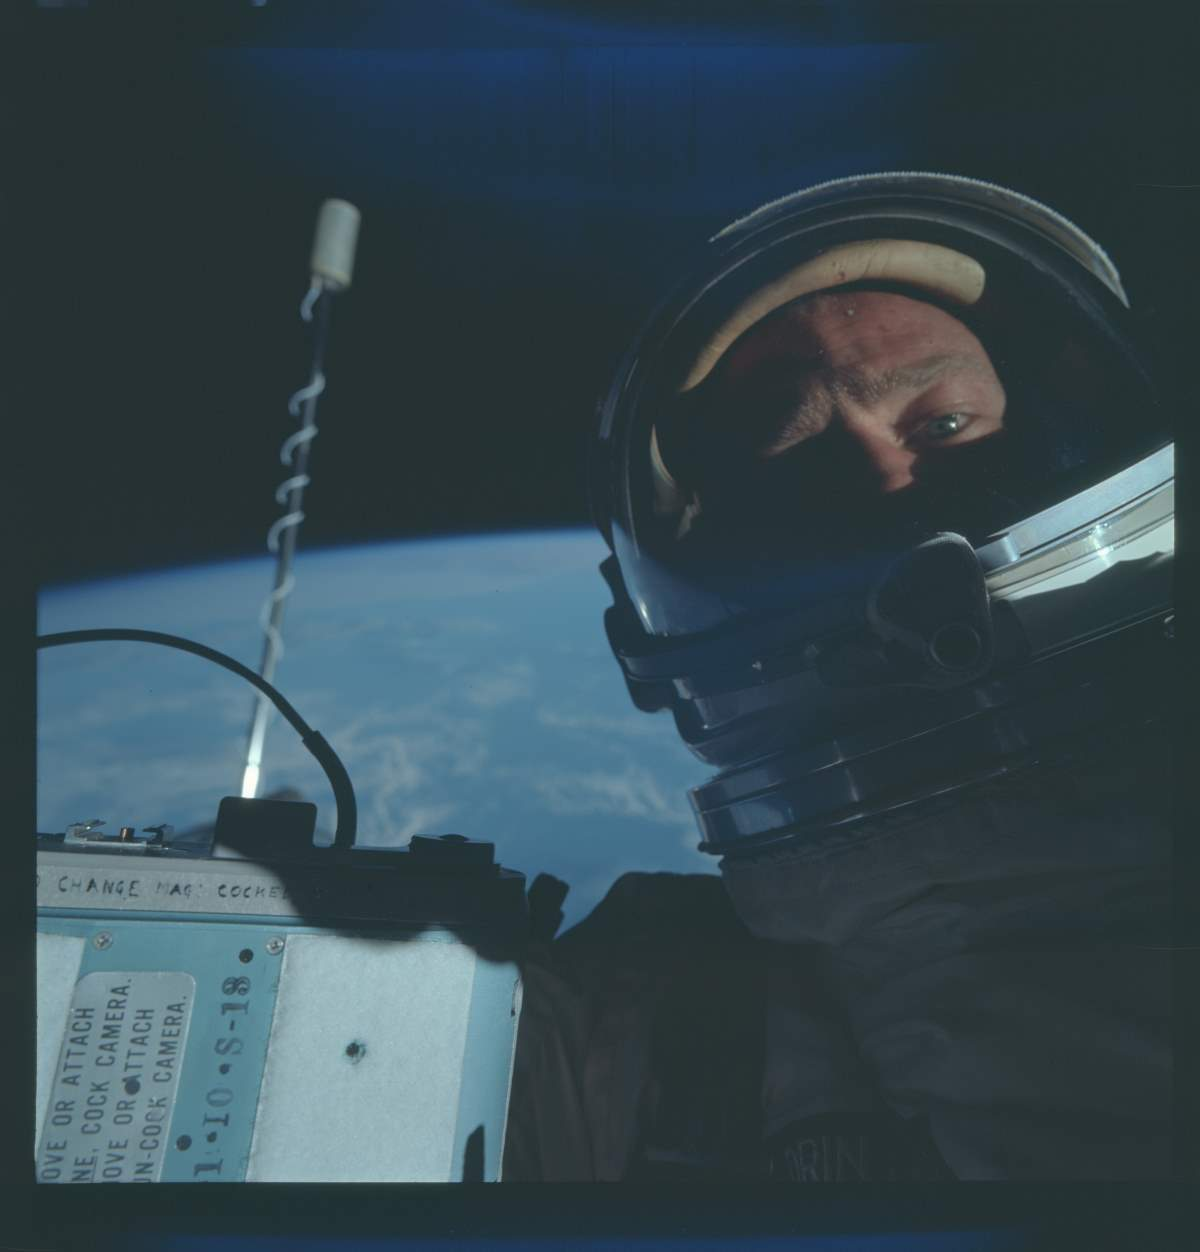 Buzz Aldrin selfie during the Gemini 12 Mission